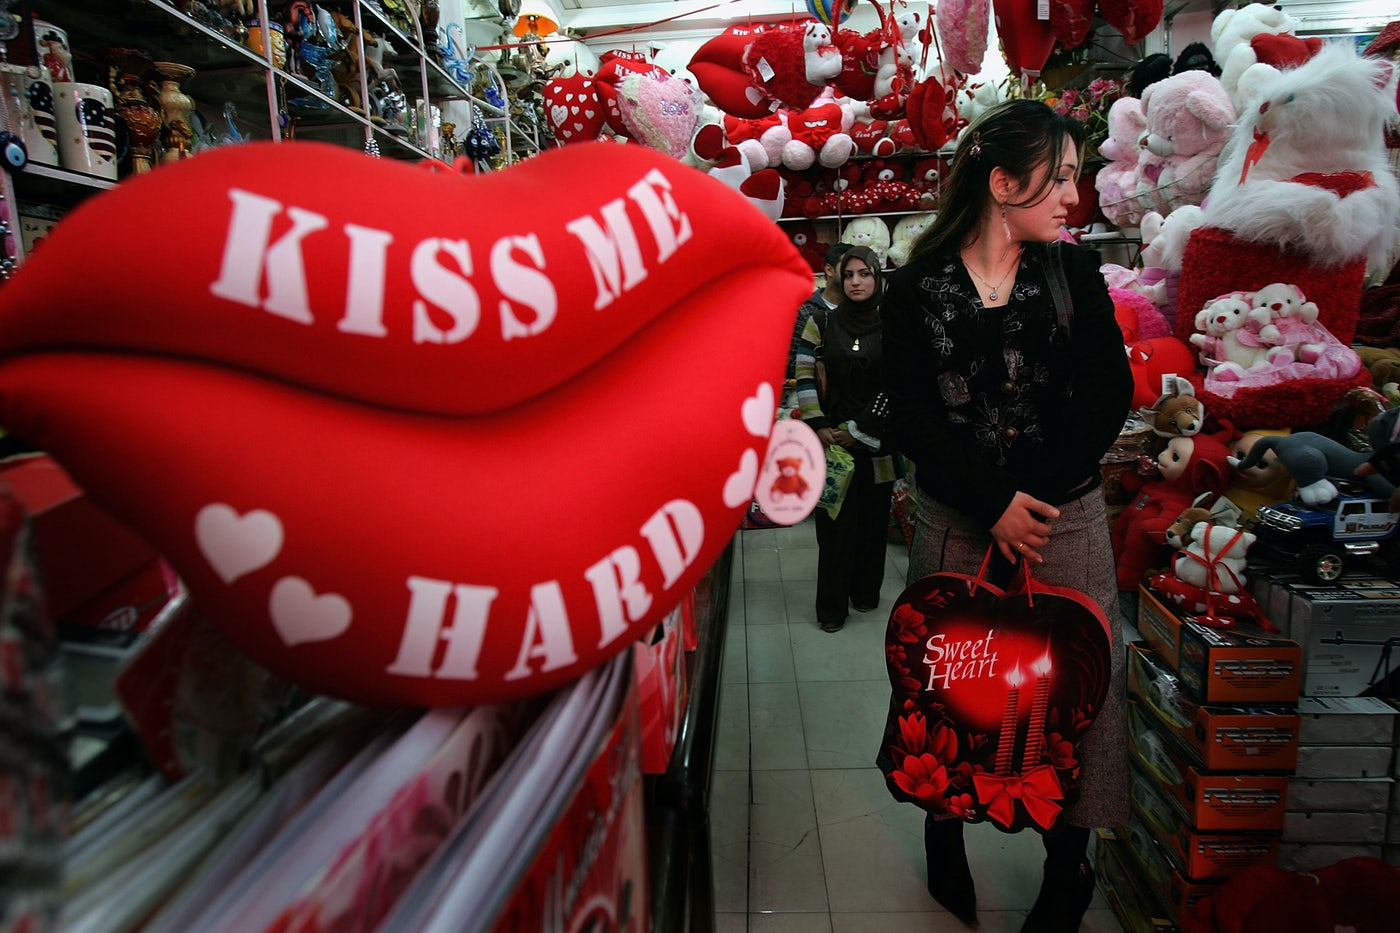 A woman shops a Valentine's Day display.